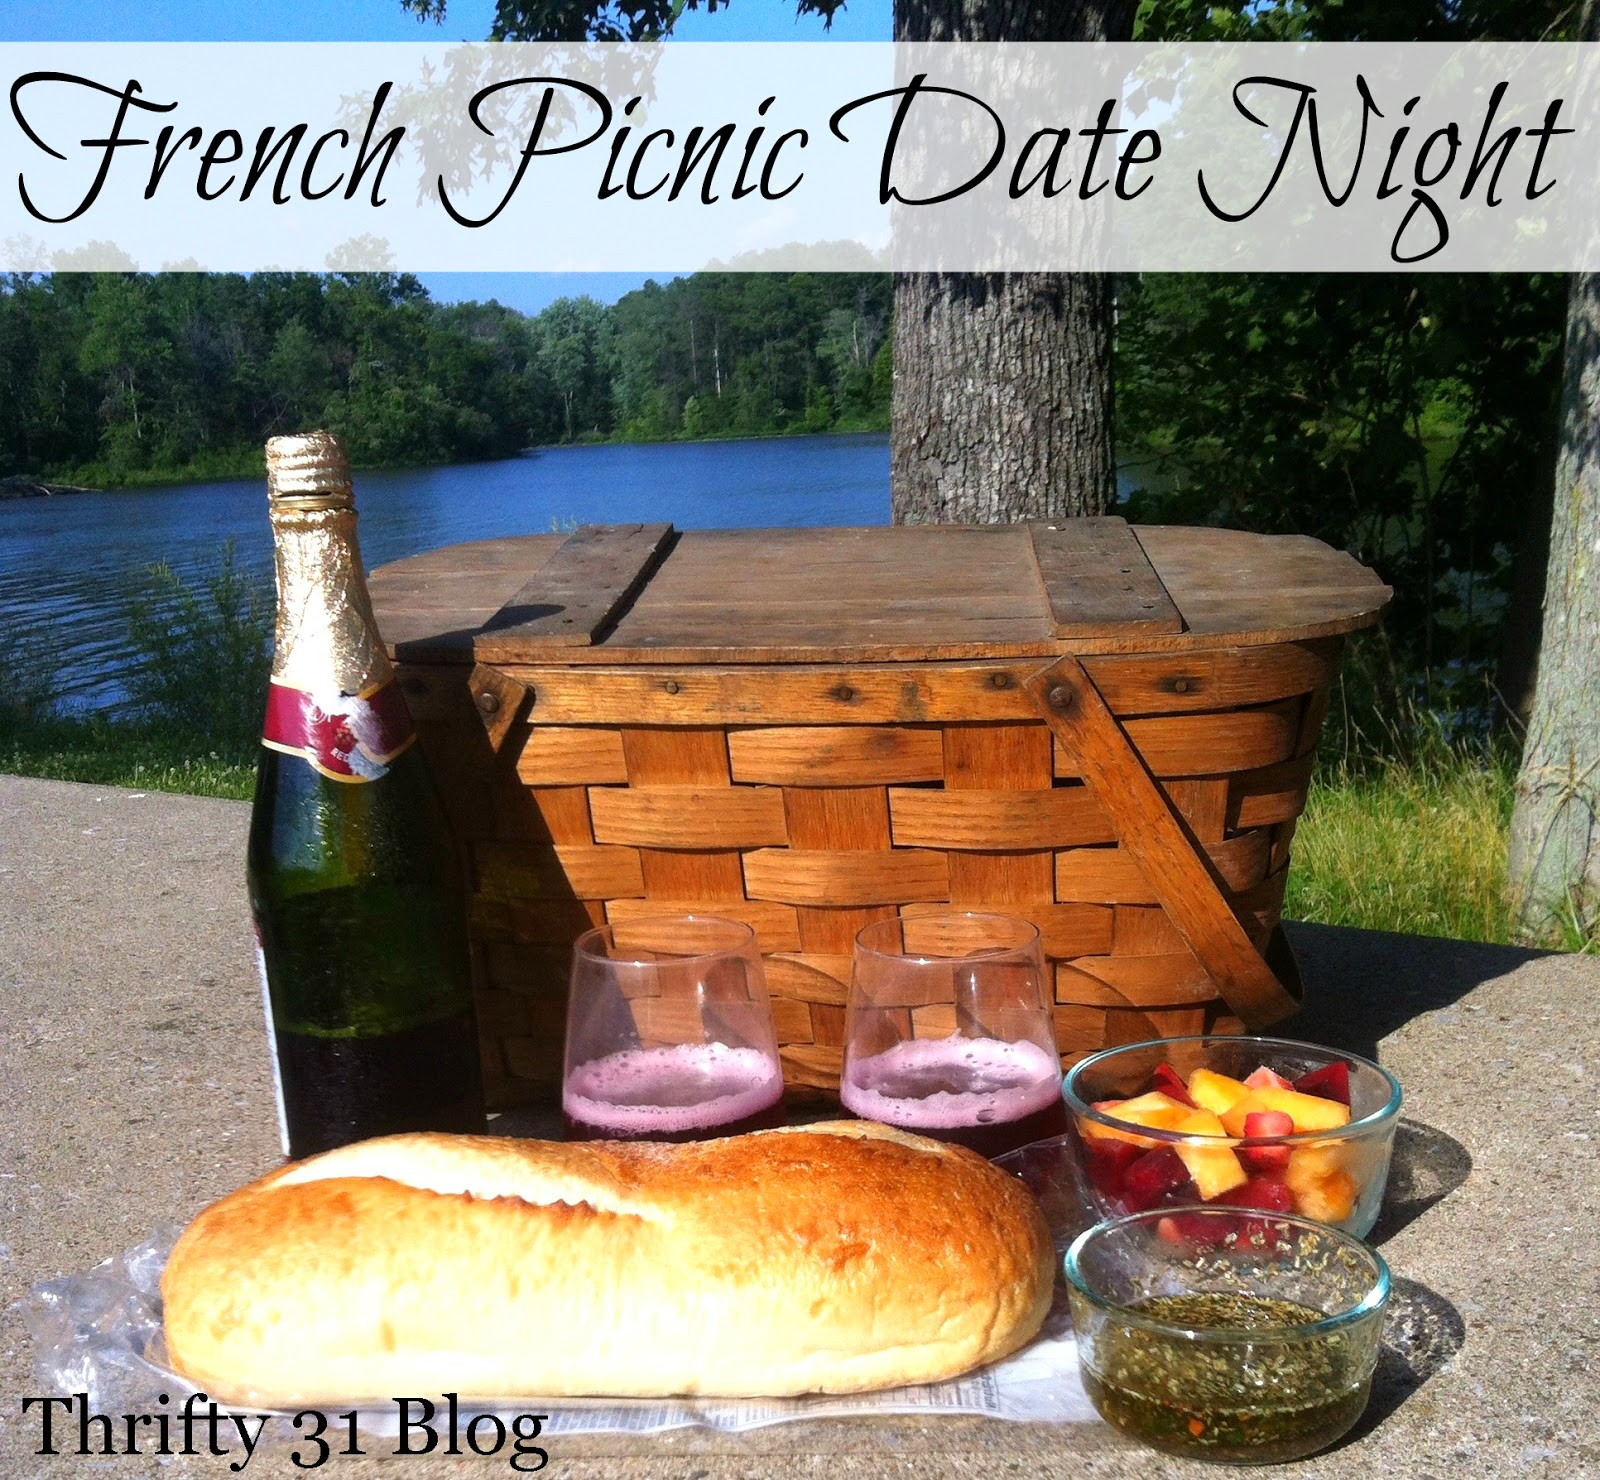 http://leahjayewright.blogspot.com/2014/06/world-travel-date-night-france.html